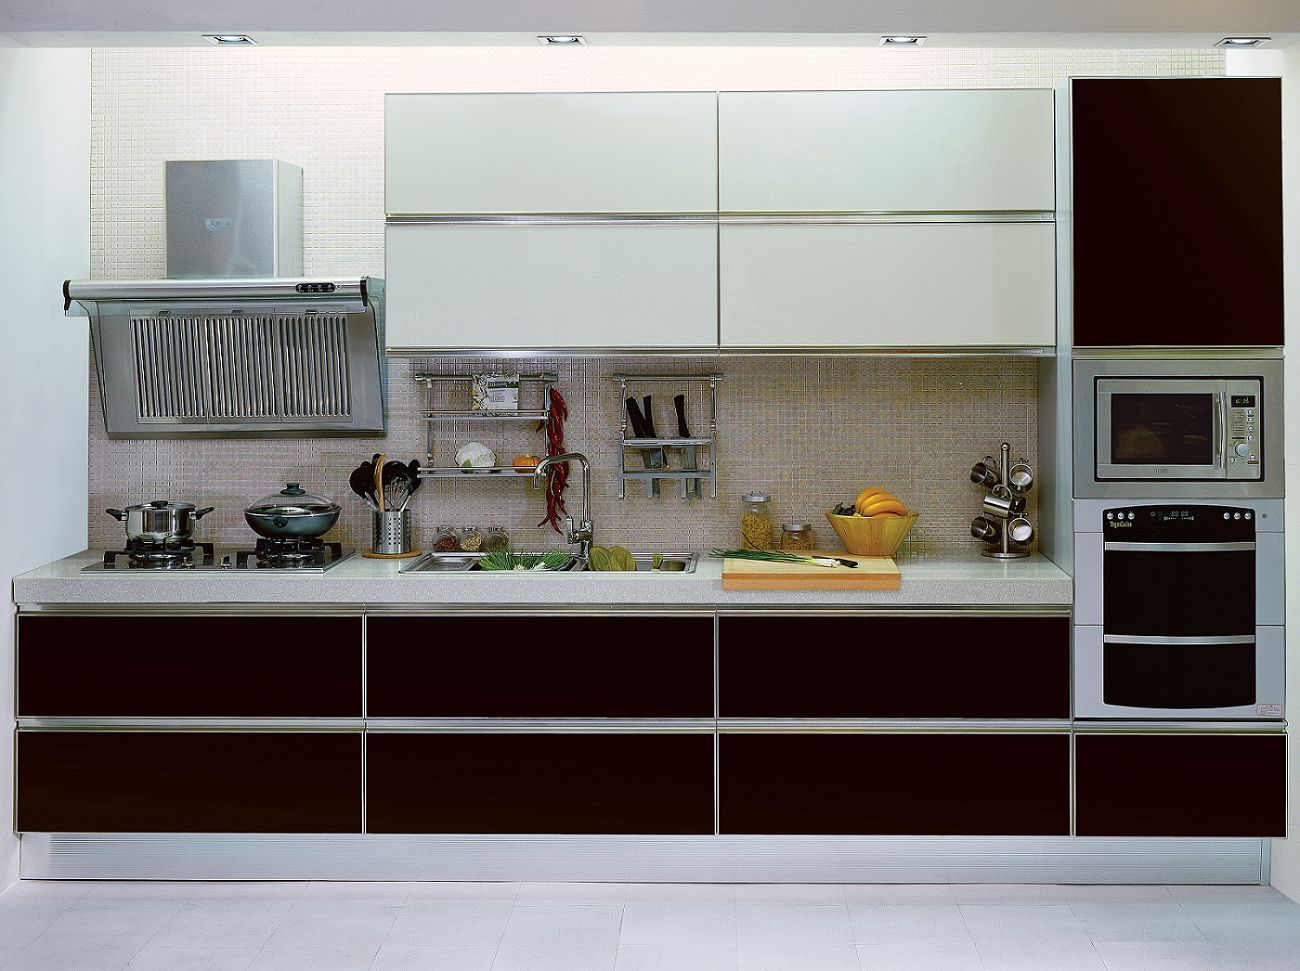 european kitchen cabinet accessories & european kitchen cabinet accessories | KITCHENS | Pinterest ... kurilladesign.com